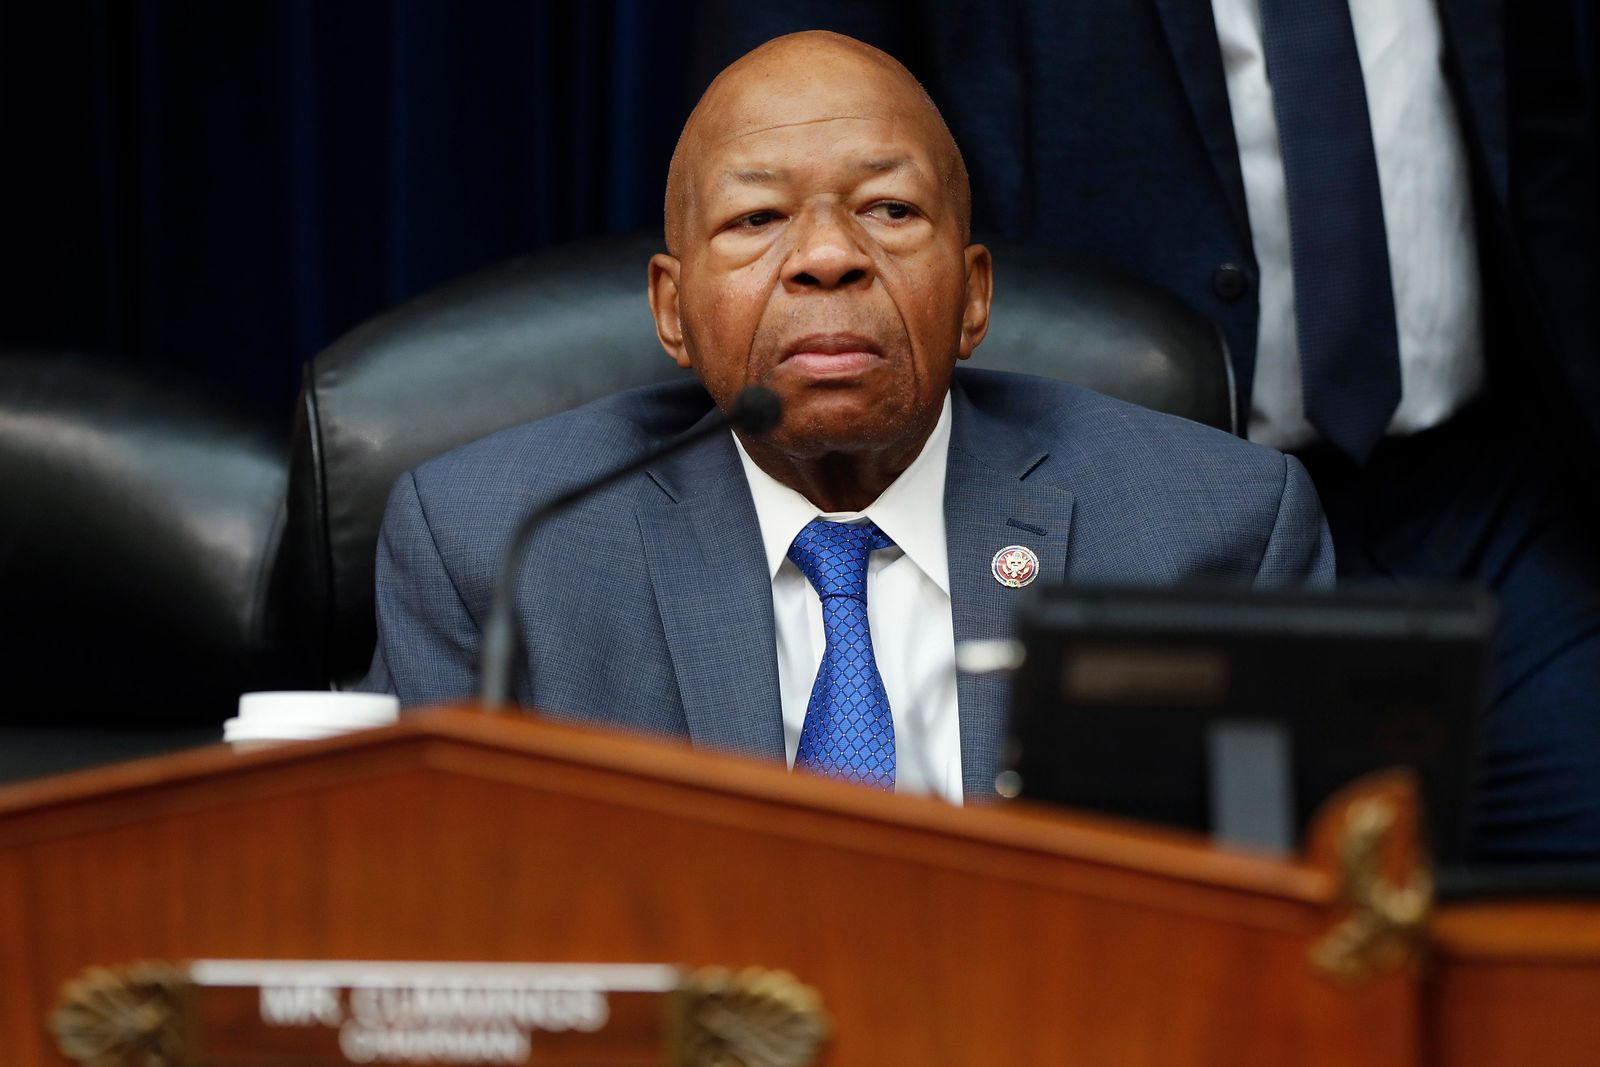 House Oversight and Reform Committee Chair Elijah Cummings, D-Md., watches during a break in testimony by Michael Cohen, President Donald Trump's former lawyer, on Capitol Hill in Washington, Wednesday, Feb. 27, 2019. (AP Photo/Pablo Martinez Monsivais)